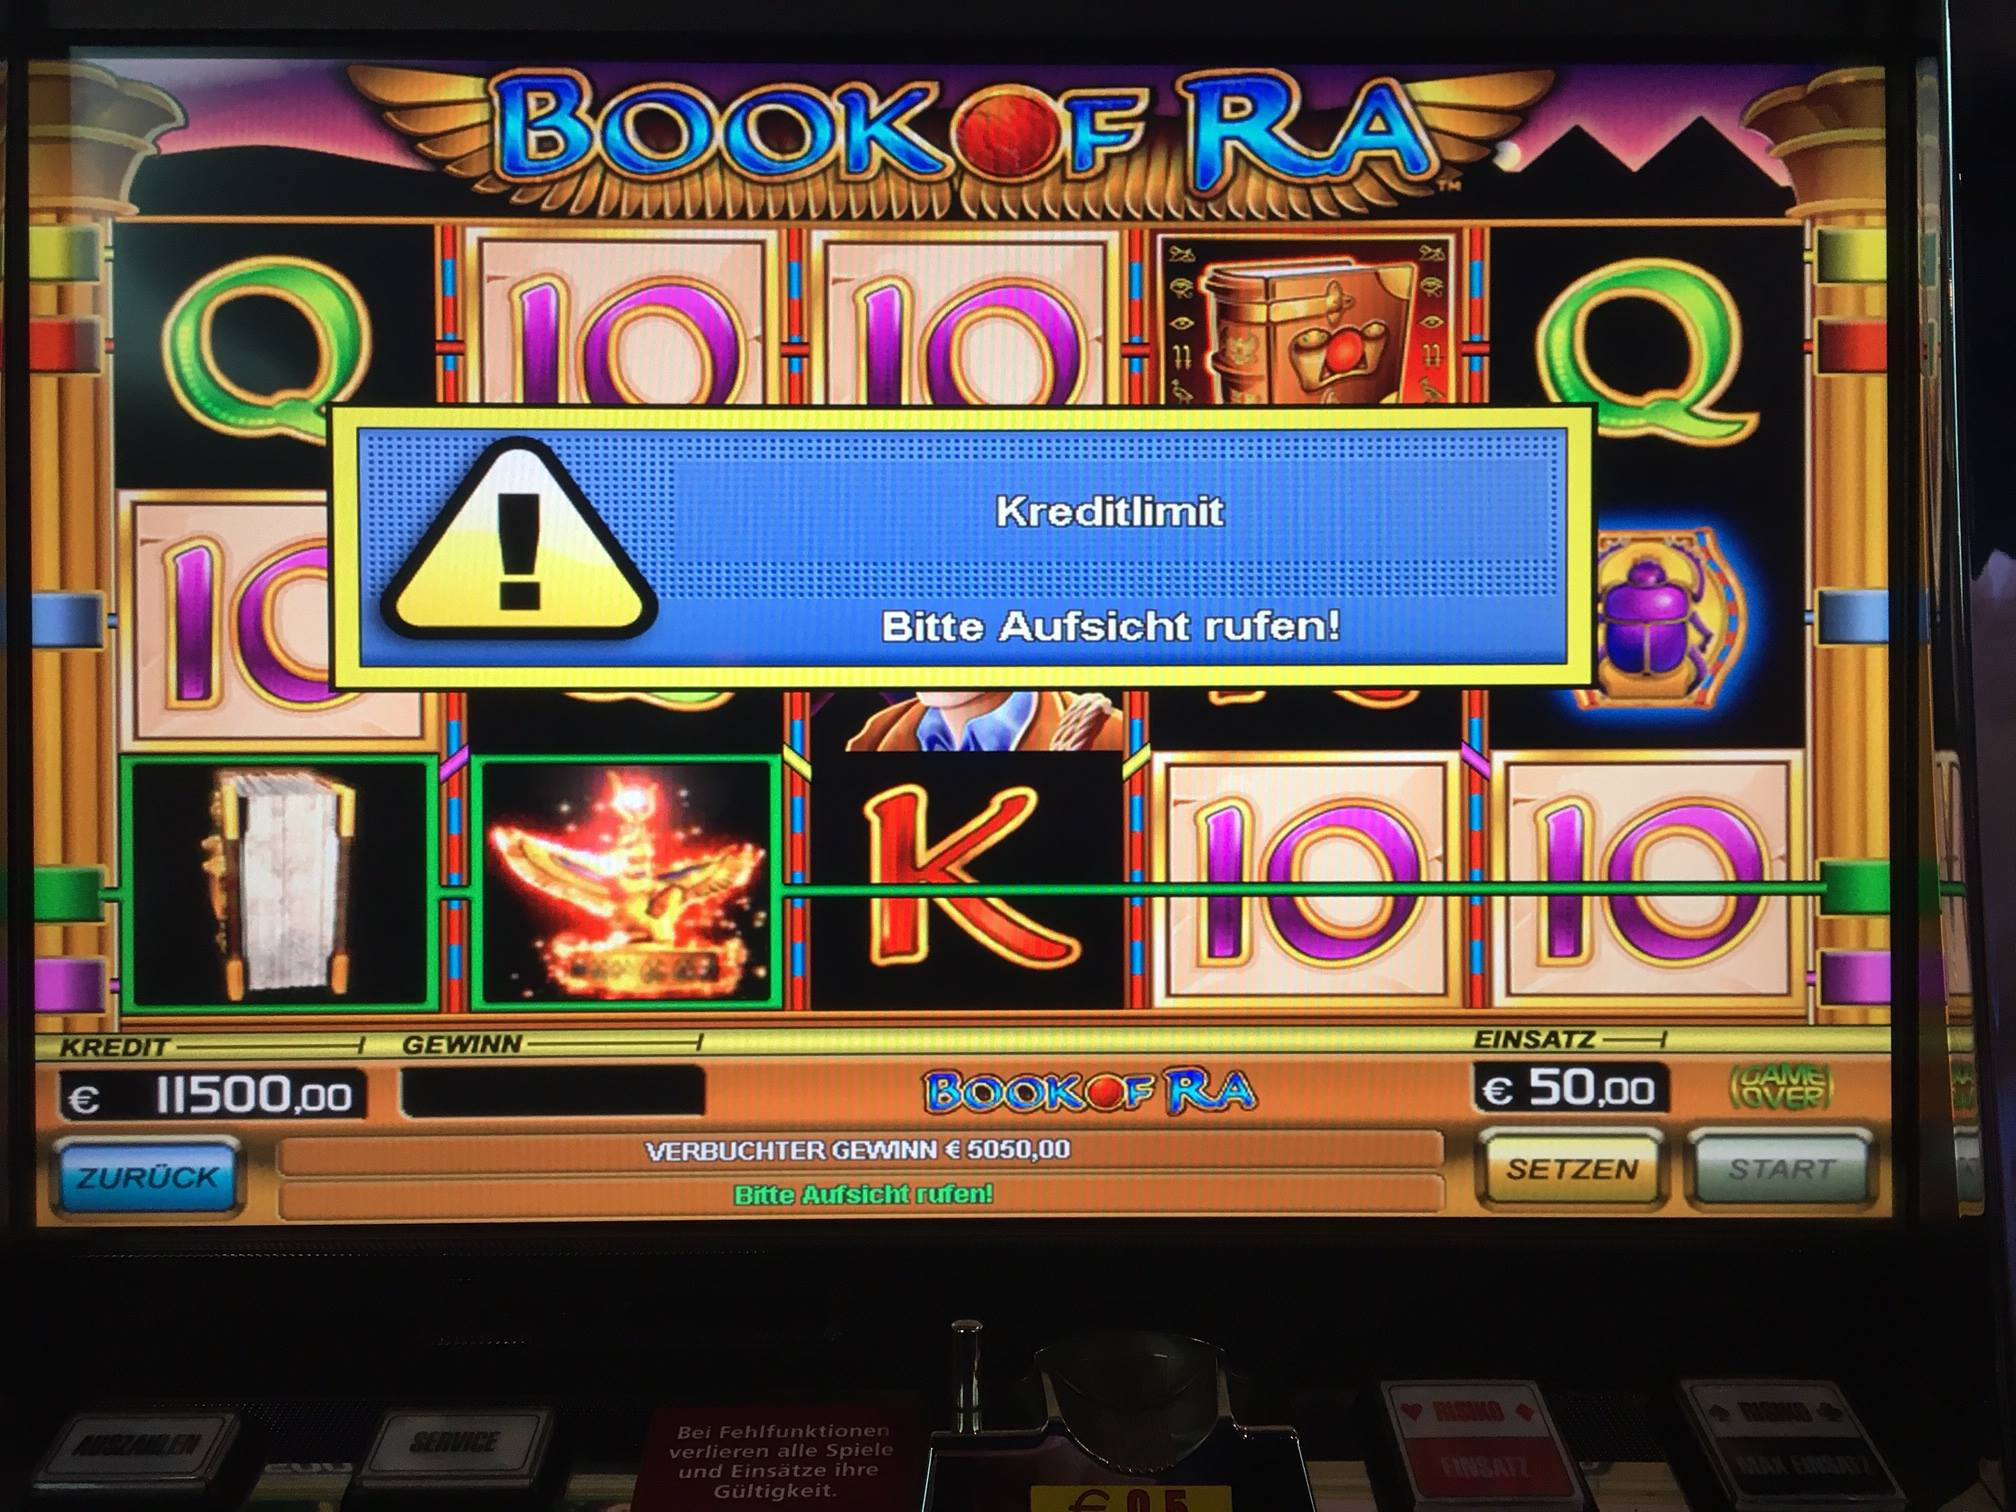 online casino video poker books of ra